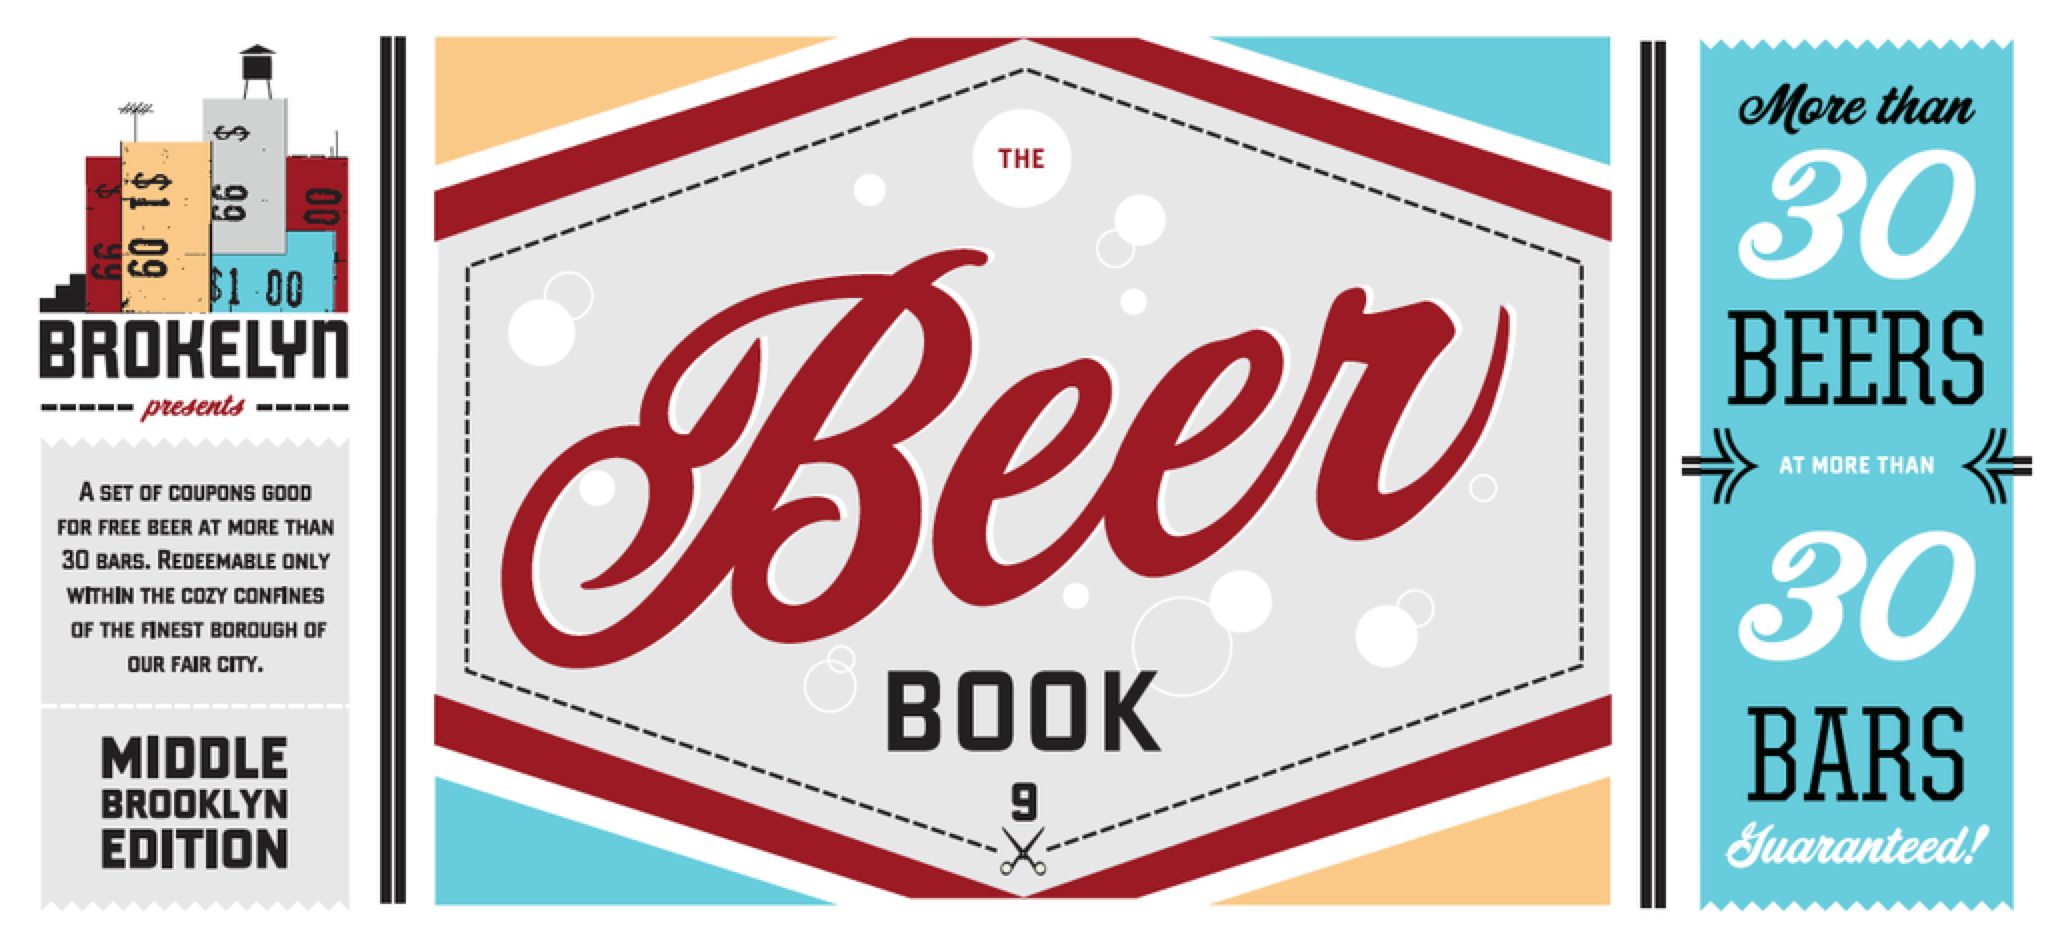 Cheap Beer Alert: Brokelyn's Beer Books On Sale Now